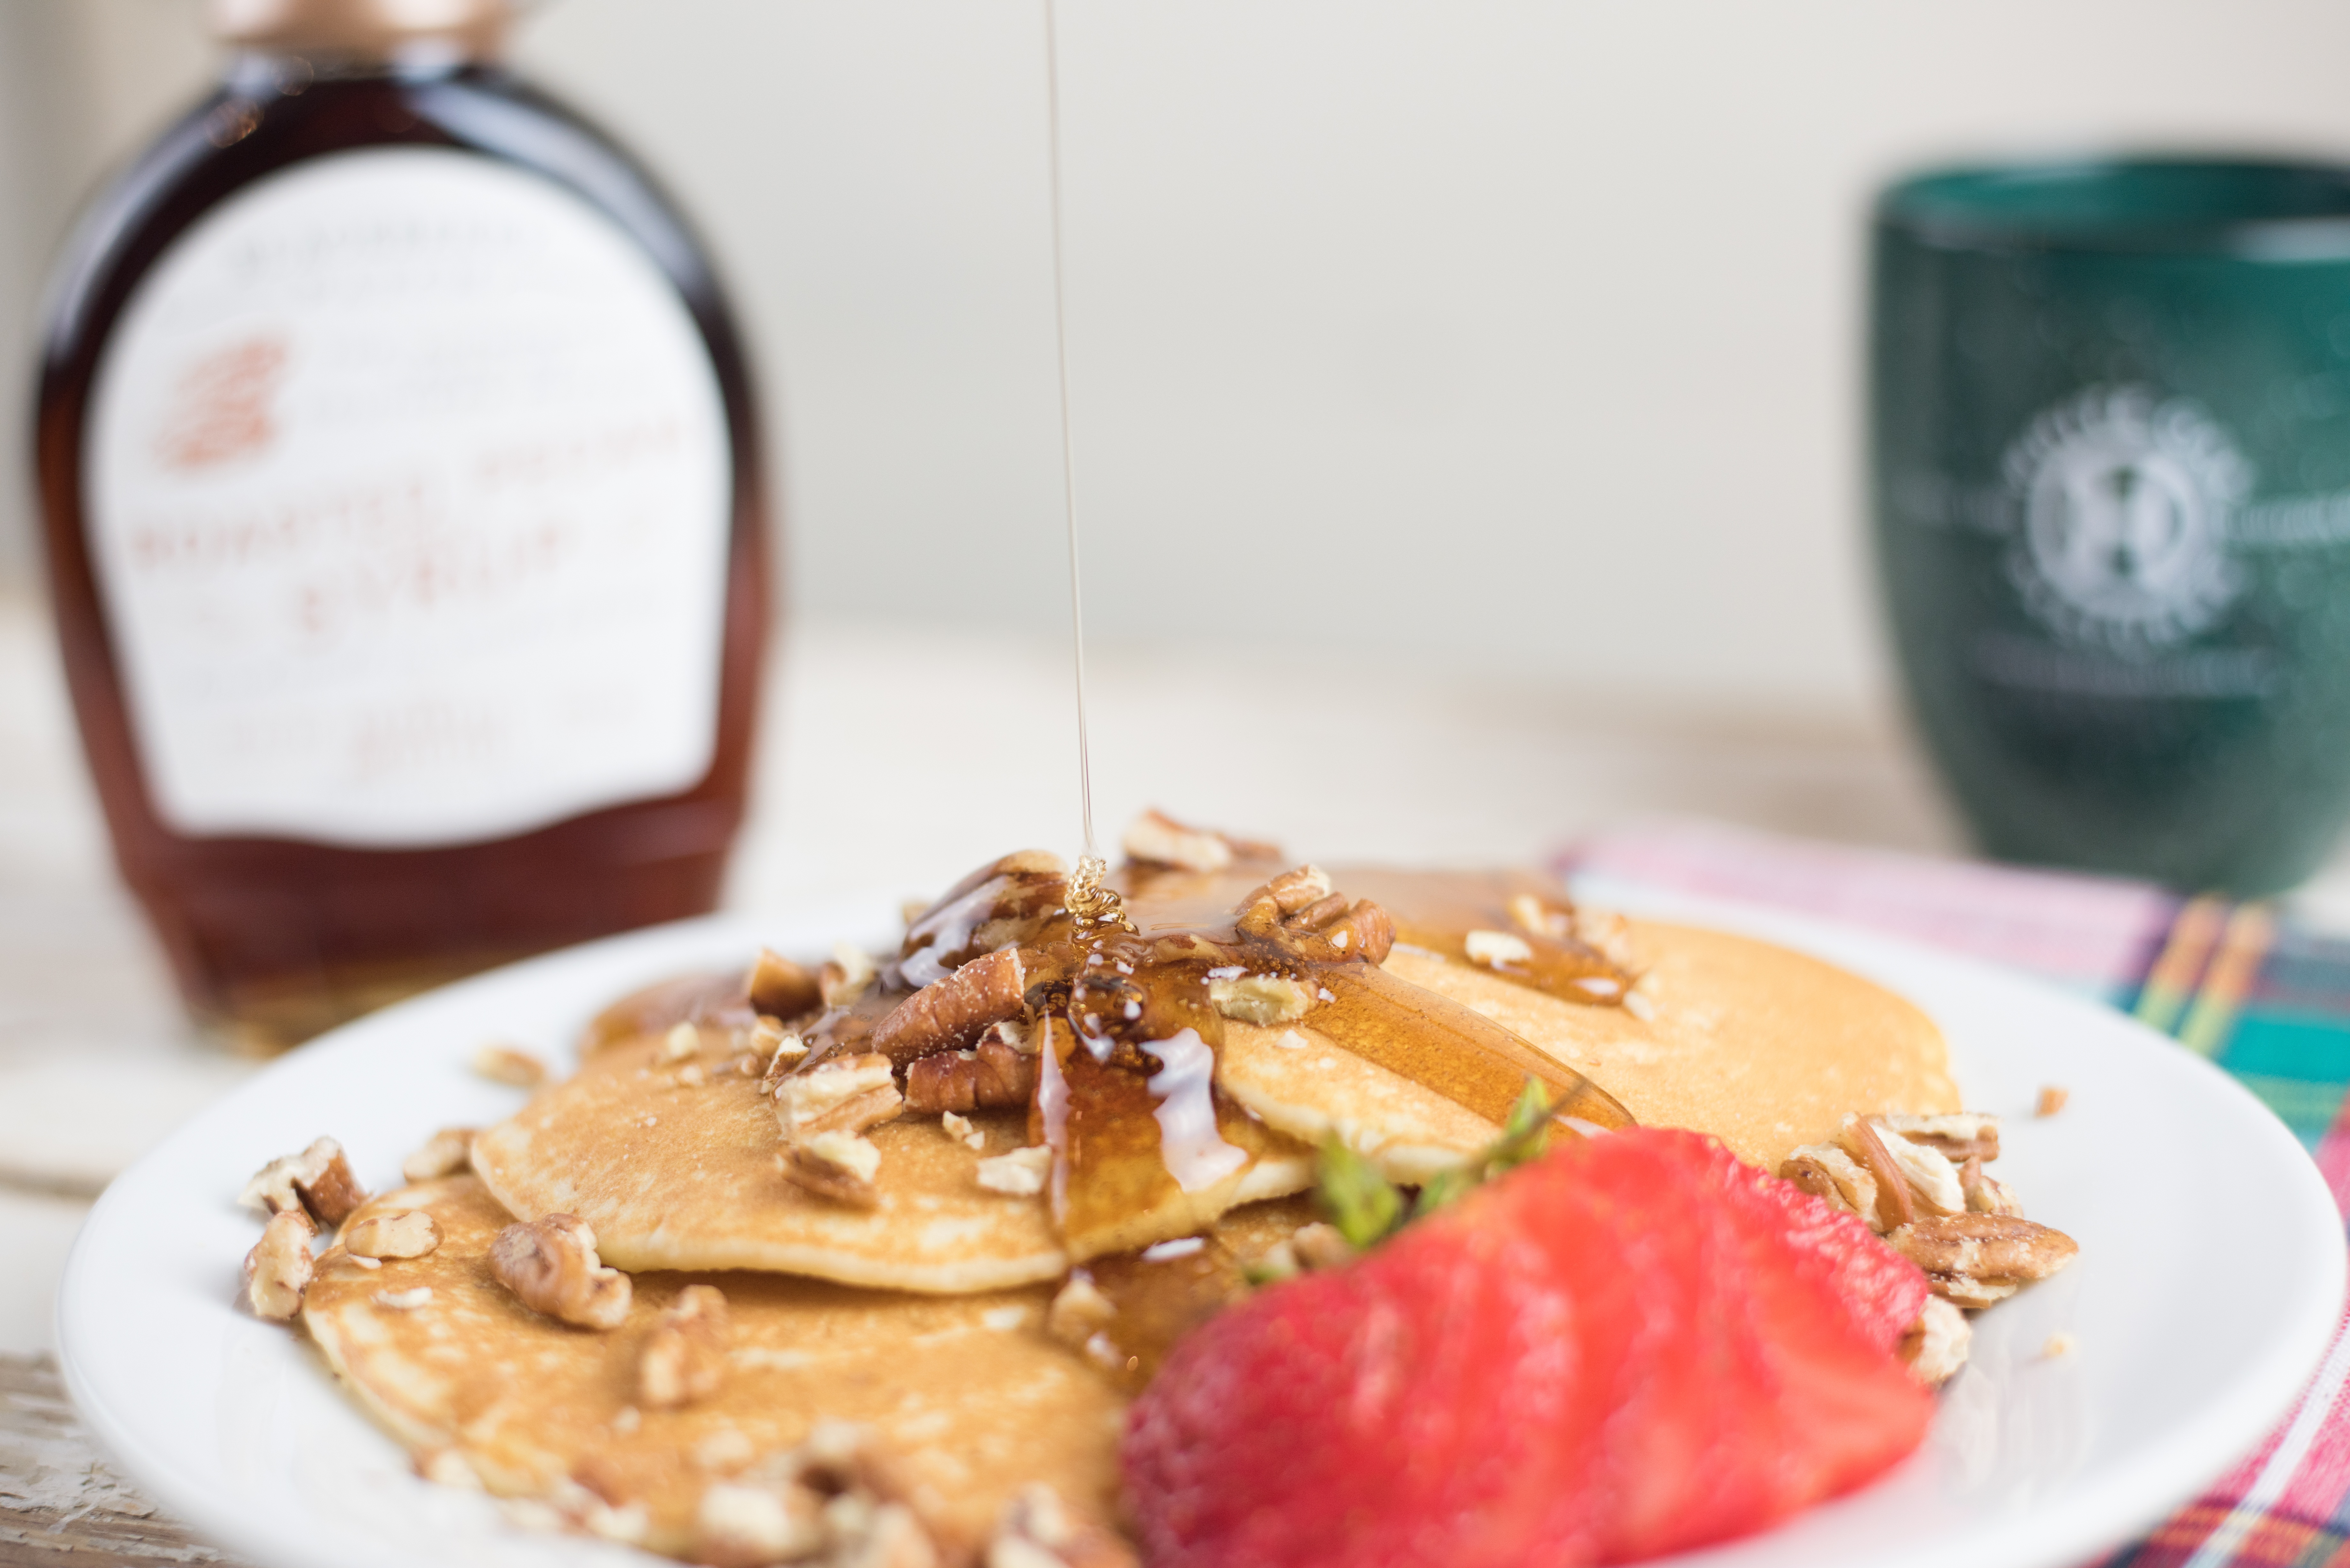 Blackberry patch pecan syrup on pancakes